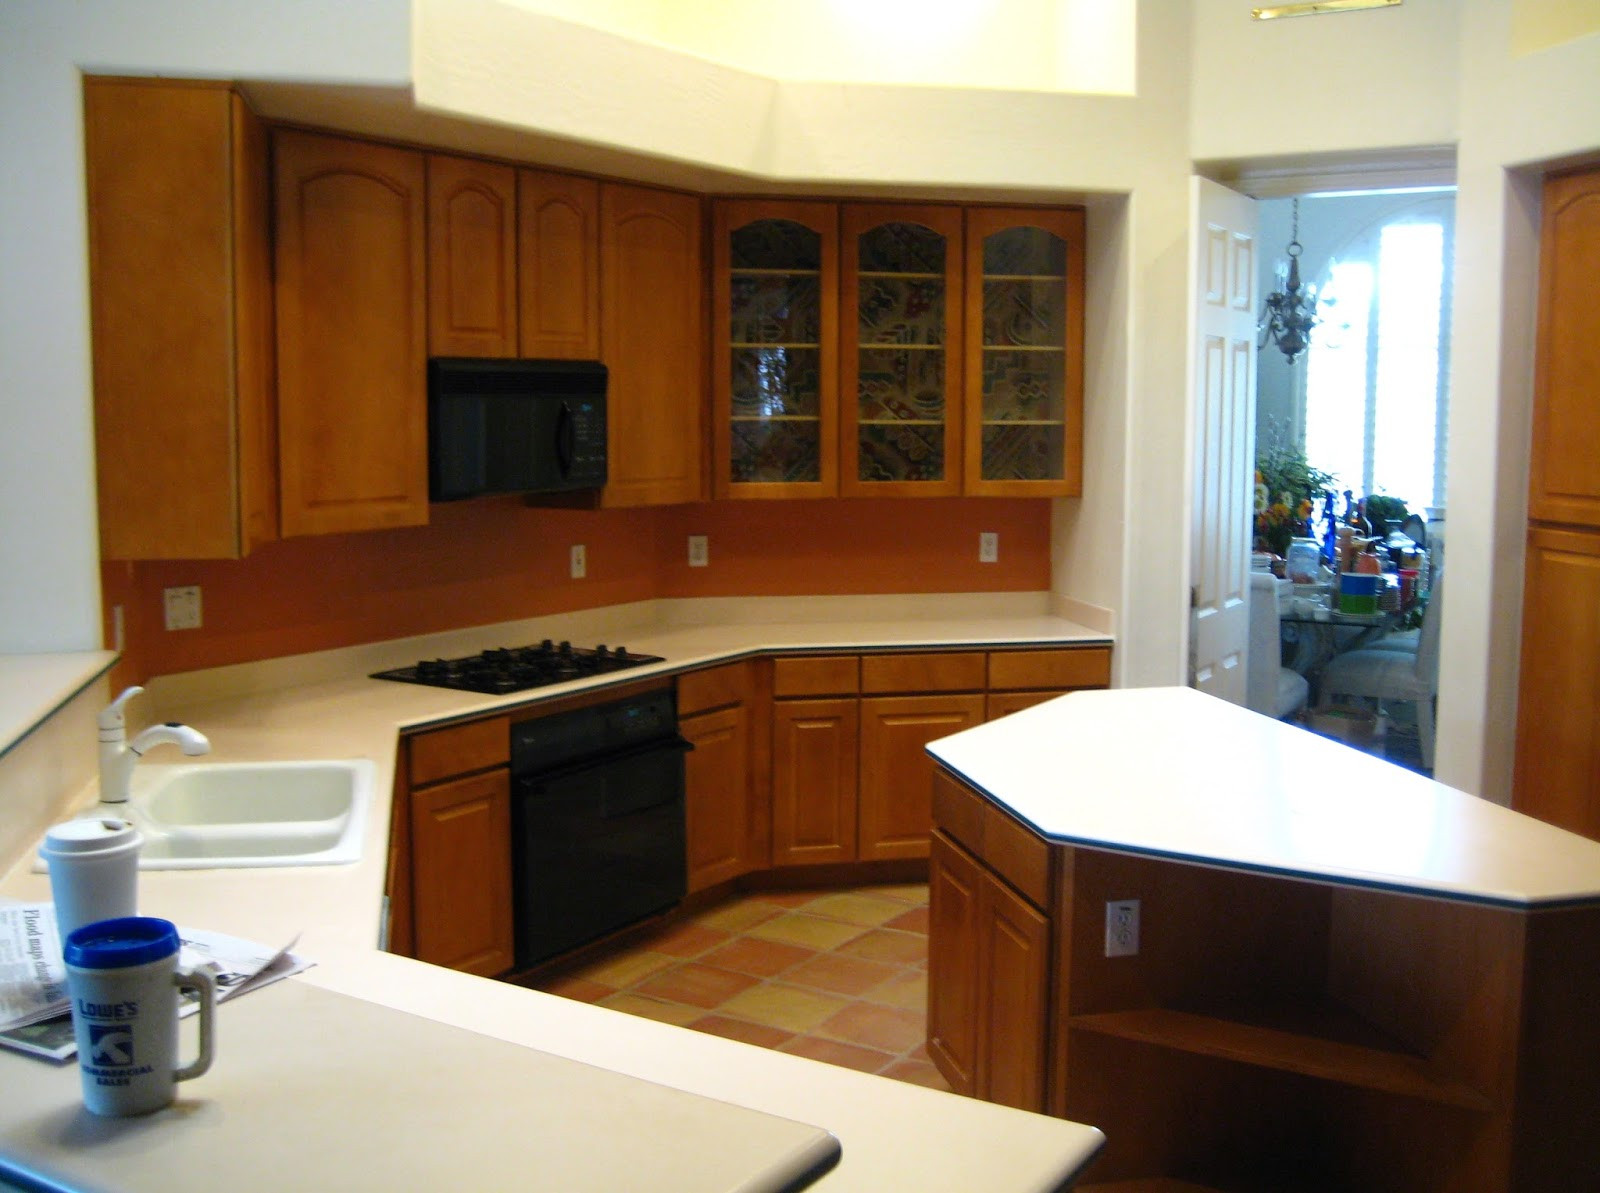 Best ideas about DIY Kitchen Remodel On A Budget . Save or Pin Do it Yourself DIY Kitchen Remodel on a Bud Country Now.